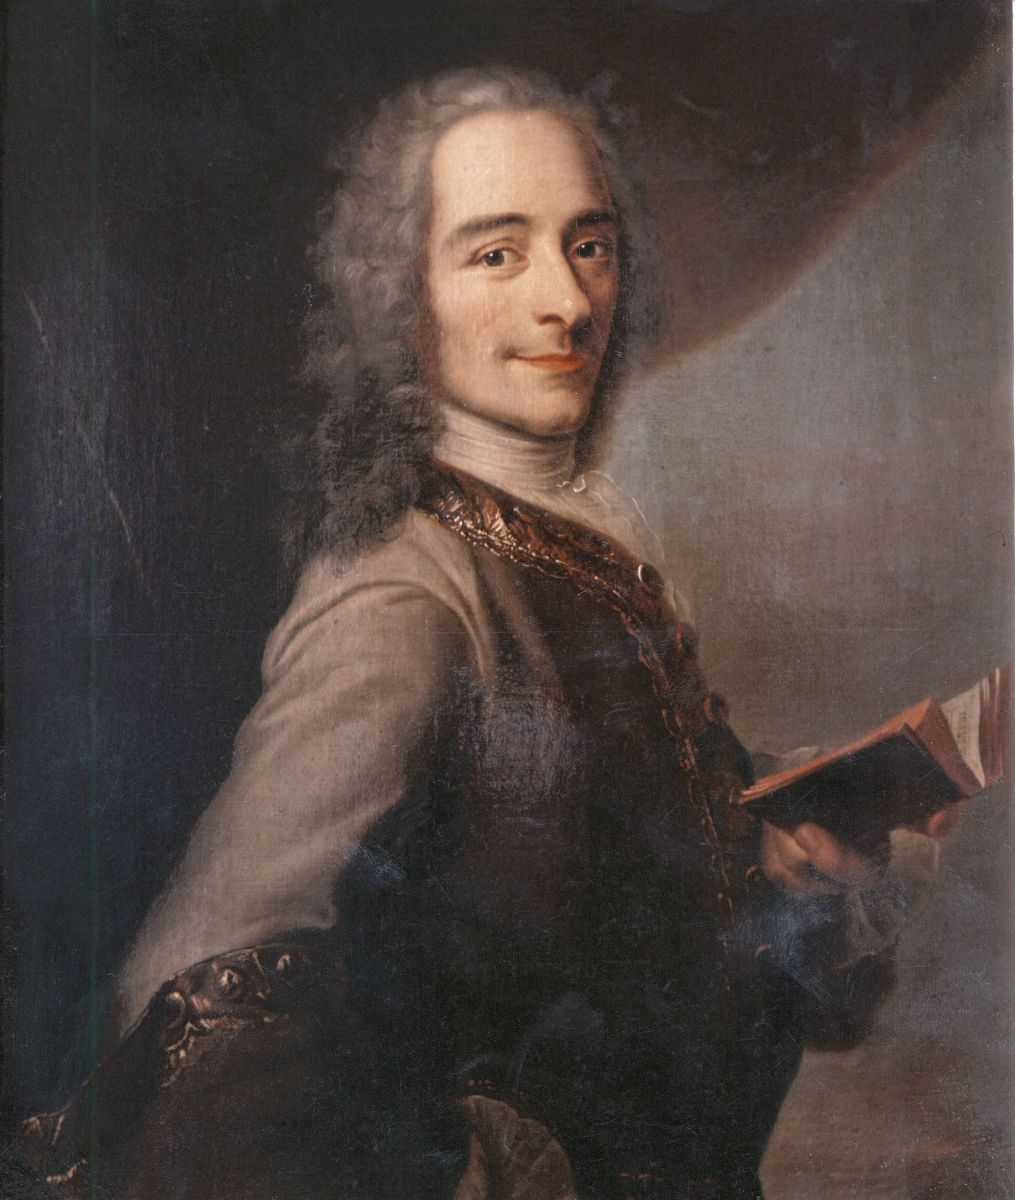 hith-10-things-voltaire-painting-104418281-2.jpg